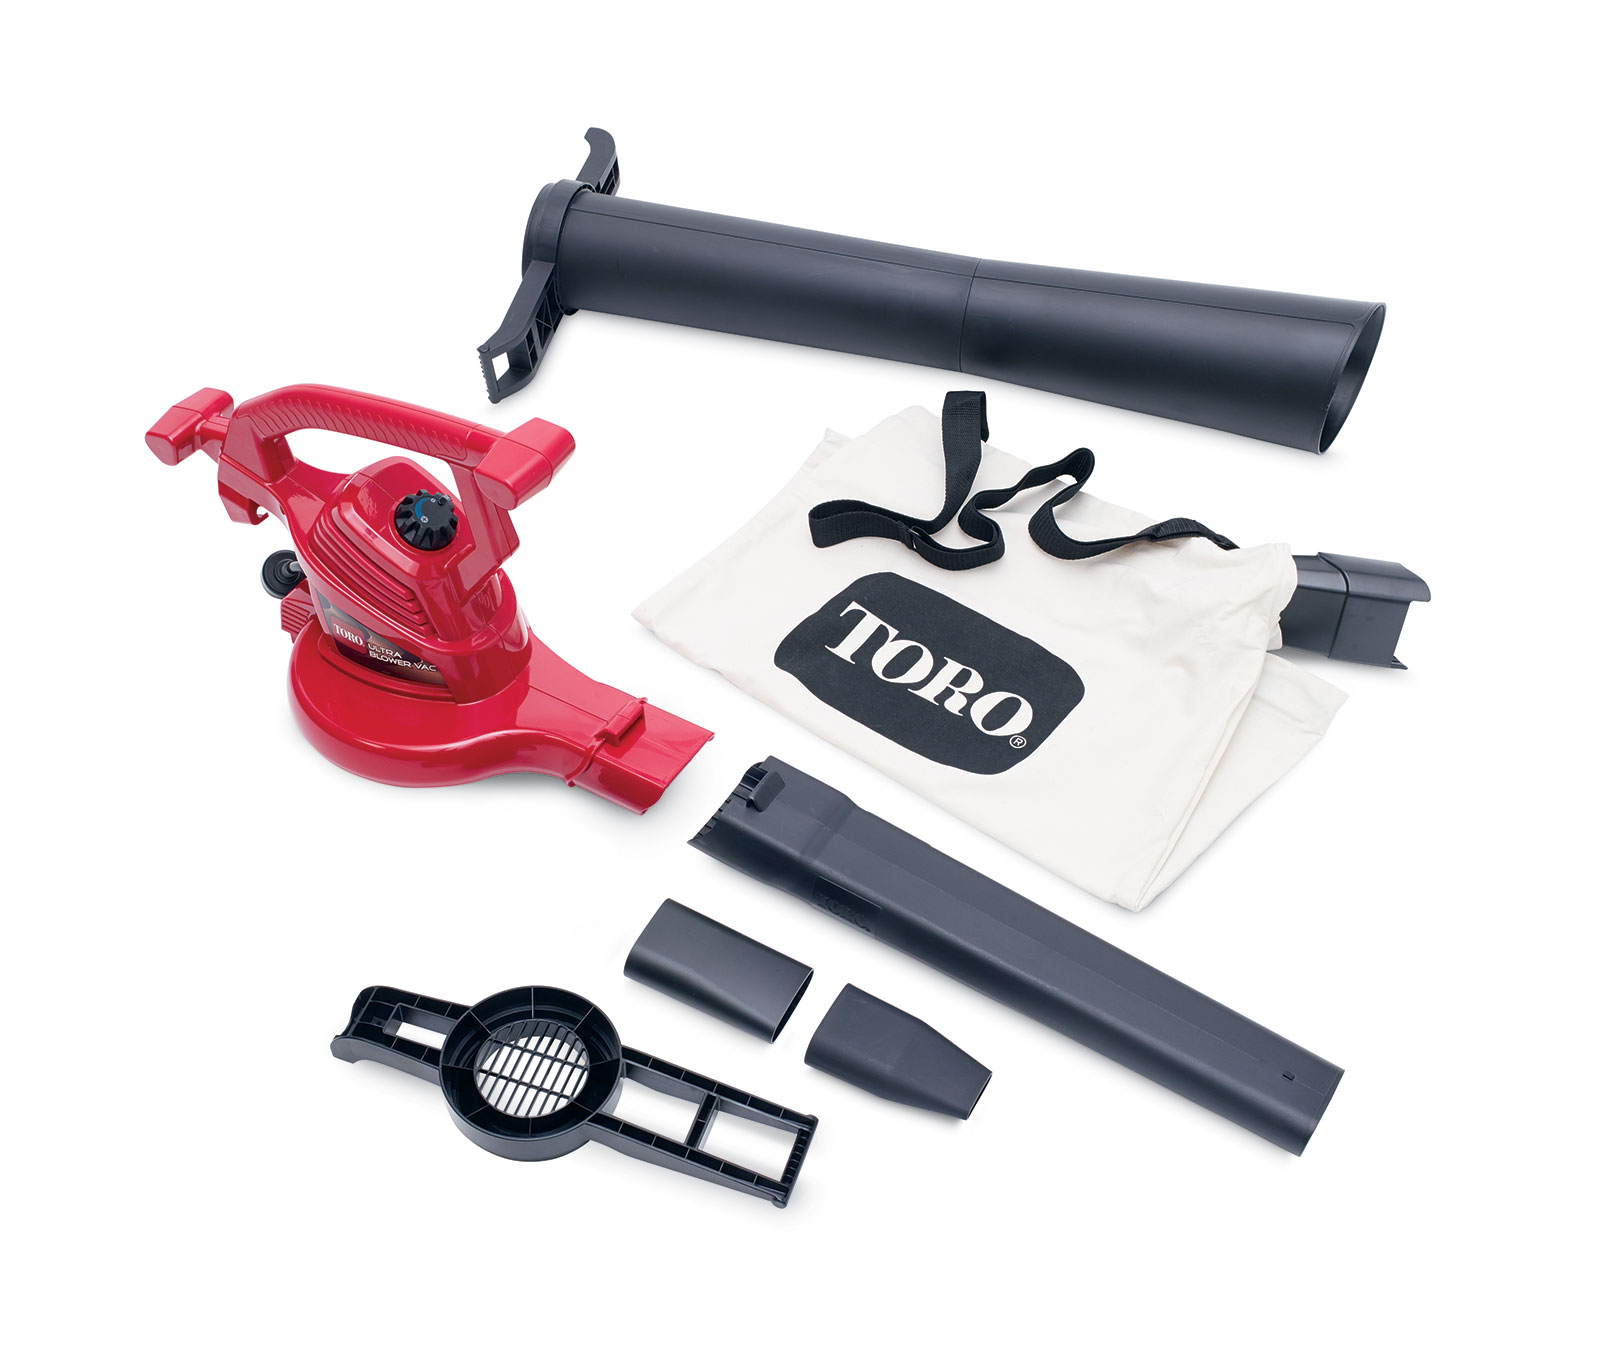 hight resolution of ultra leaf blower vac home leaf blower vacuum yard tools toro toro leaf blower wiring diagram